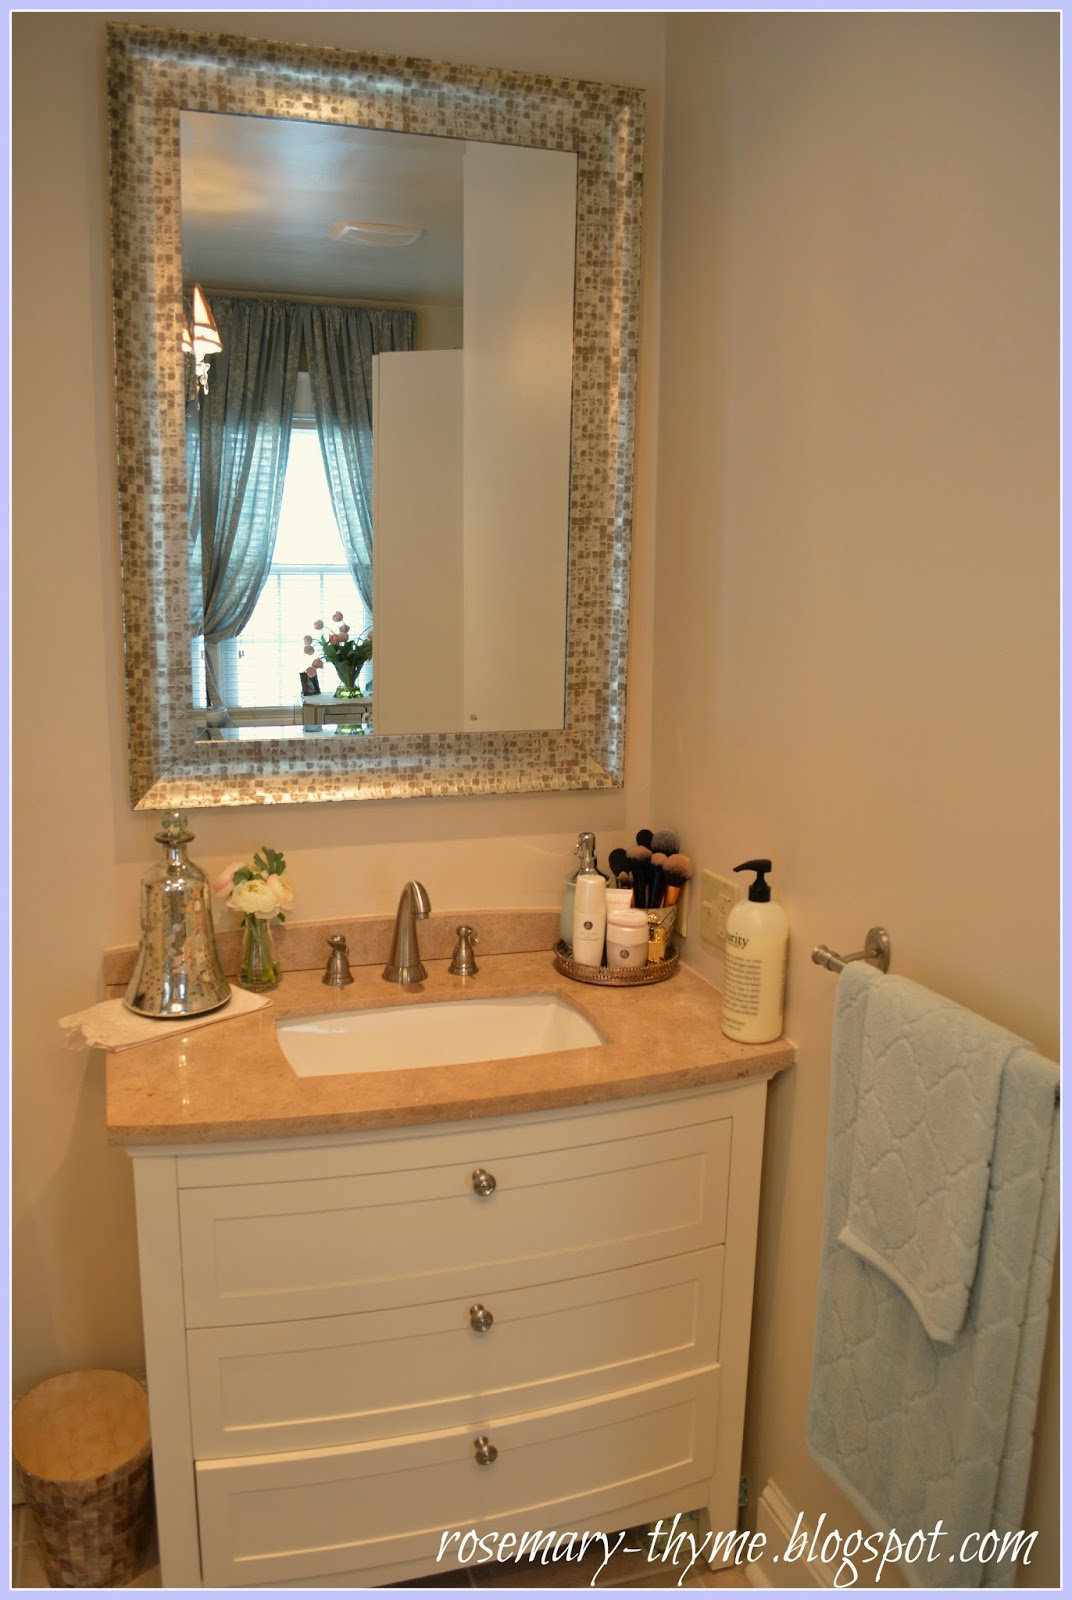 Mercury accessories  faux flowers and vintage pieces give the room romance  and a feminine appeal. Creating A Romantic Spa Bathroom On a Budget